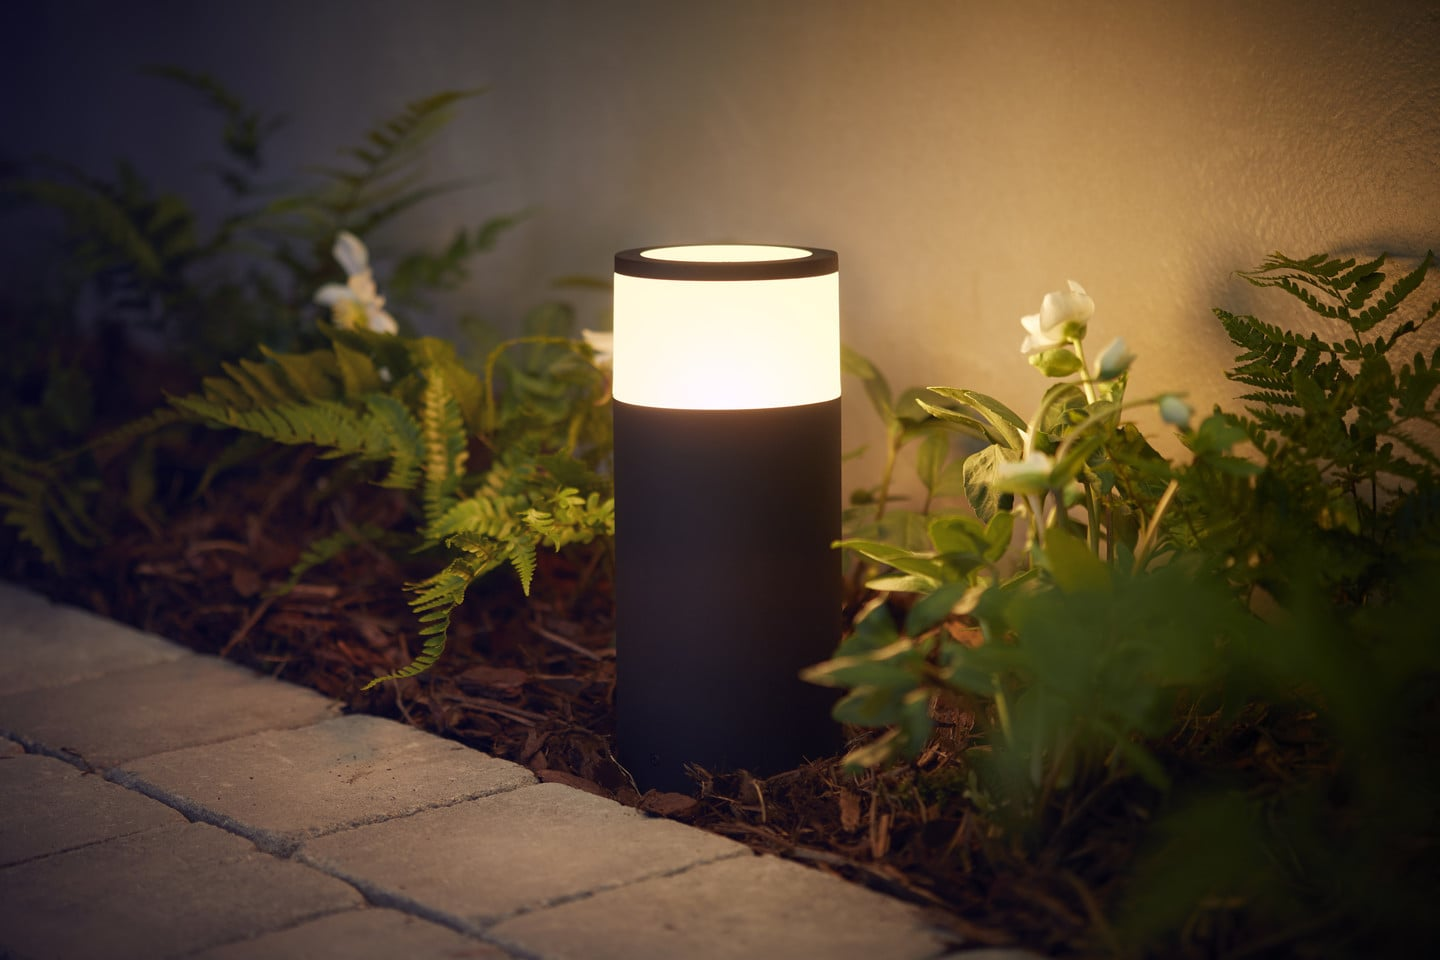 Philips Hue is getting new outdoor options to light up your garden